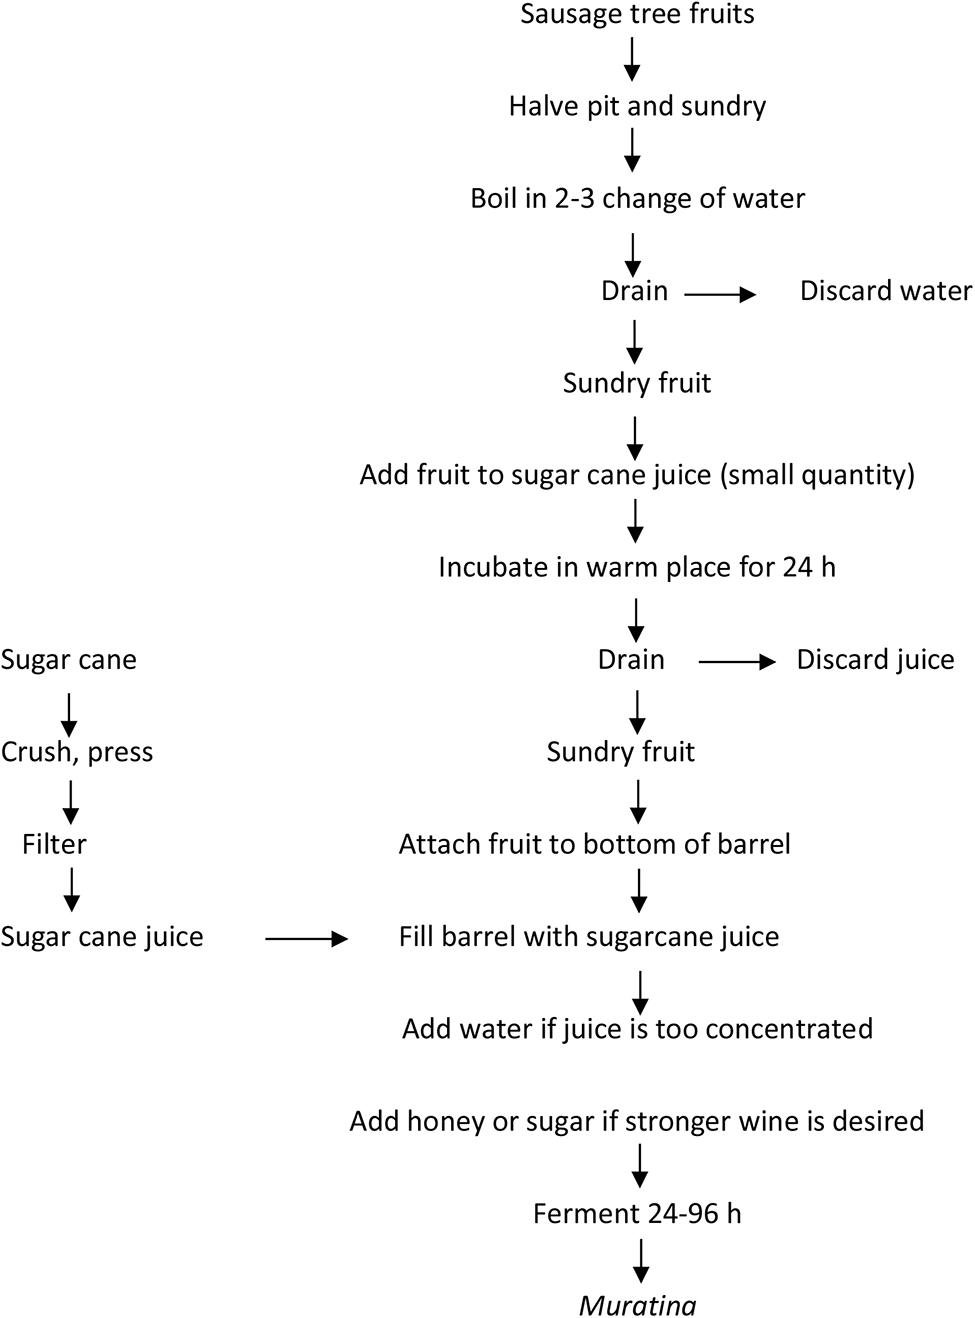 medium resolution of www frontiersin org figure 1 flow diagram of fermented sausage tree fruit